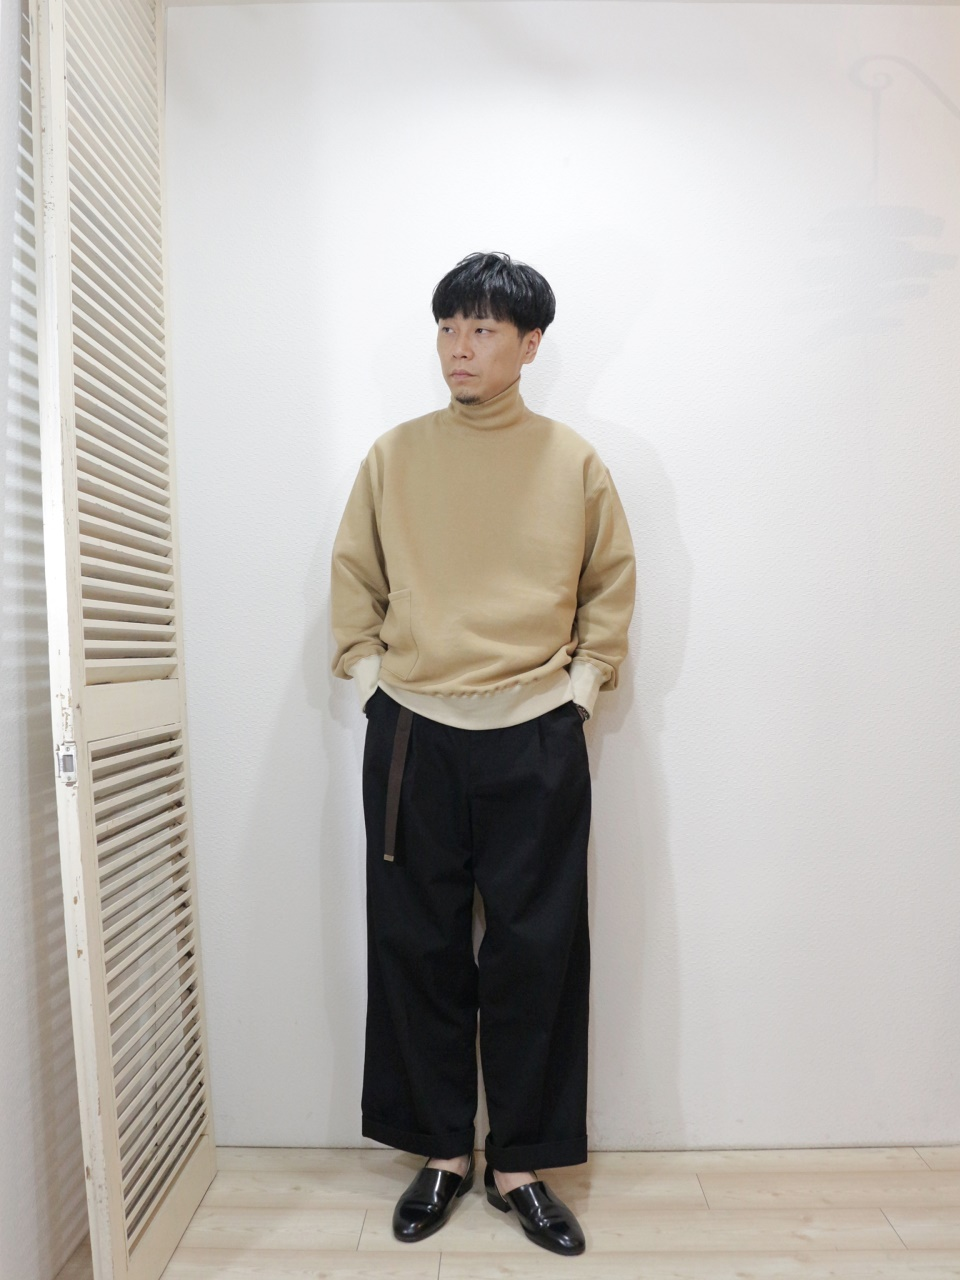 tops/H.UNIT-Mock neck pocket sweat(SIZE 1)pants/H.UNIT-Chino crown size tuck trousers(SIZE 1)belt/ReRe-D RING NARROW N-TAPE BELT(SIZE F)を使ったコーディネート